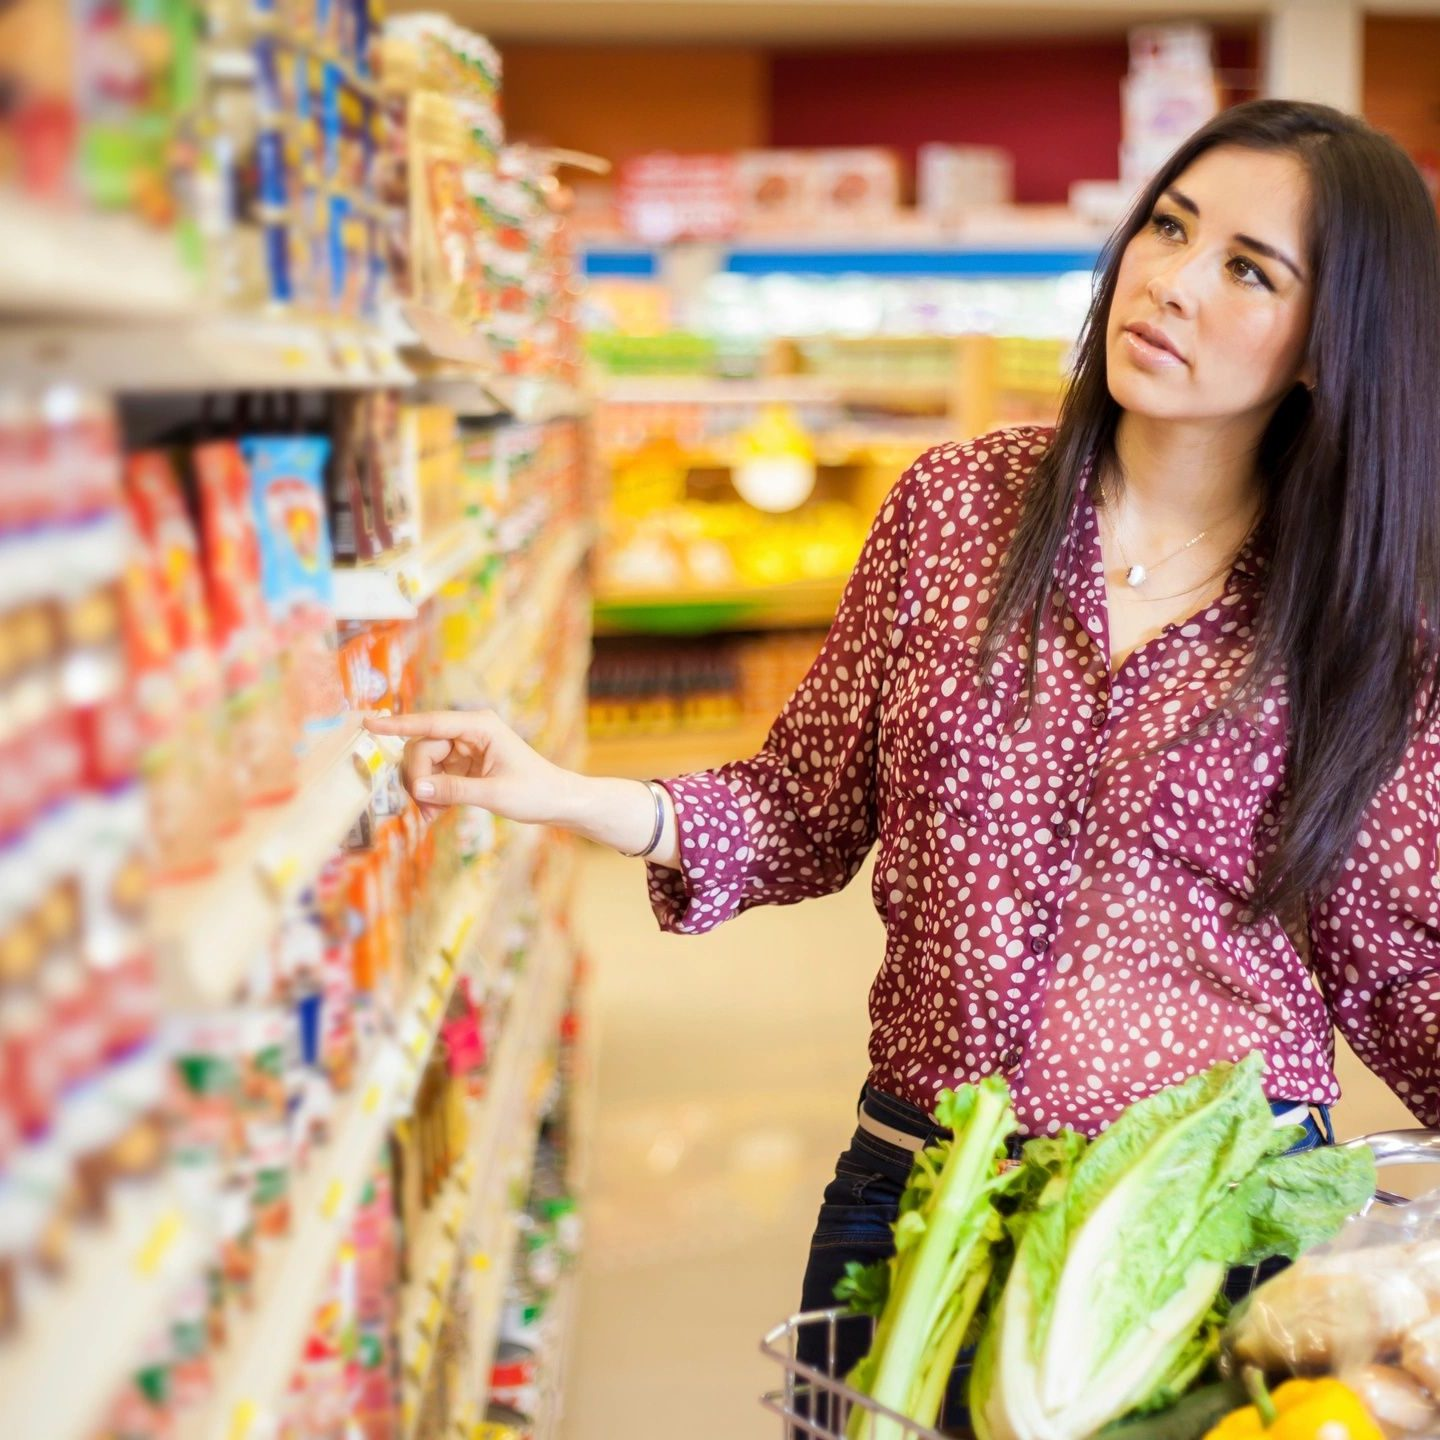 The Beginner's Guide to Grocery Shopping on a Budget